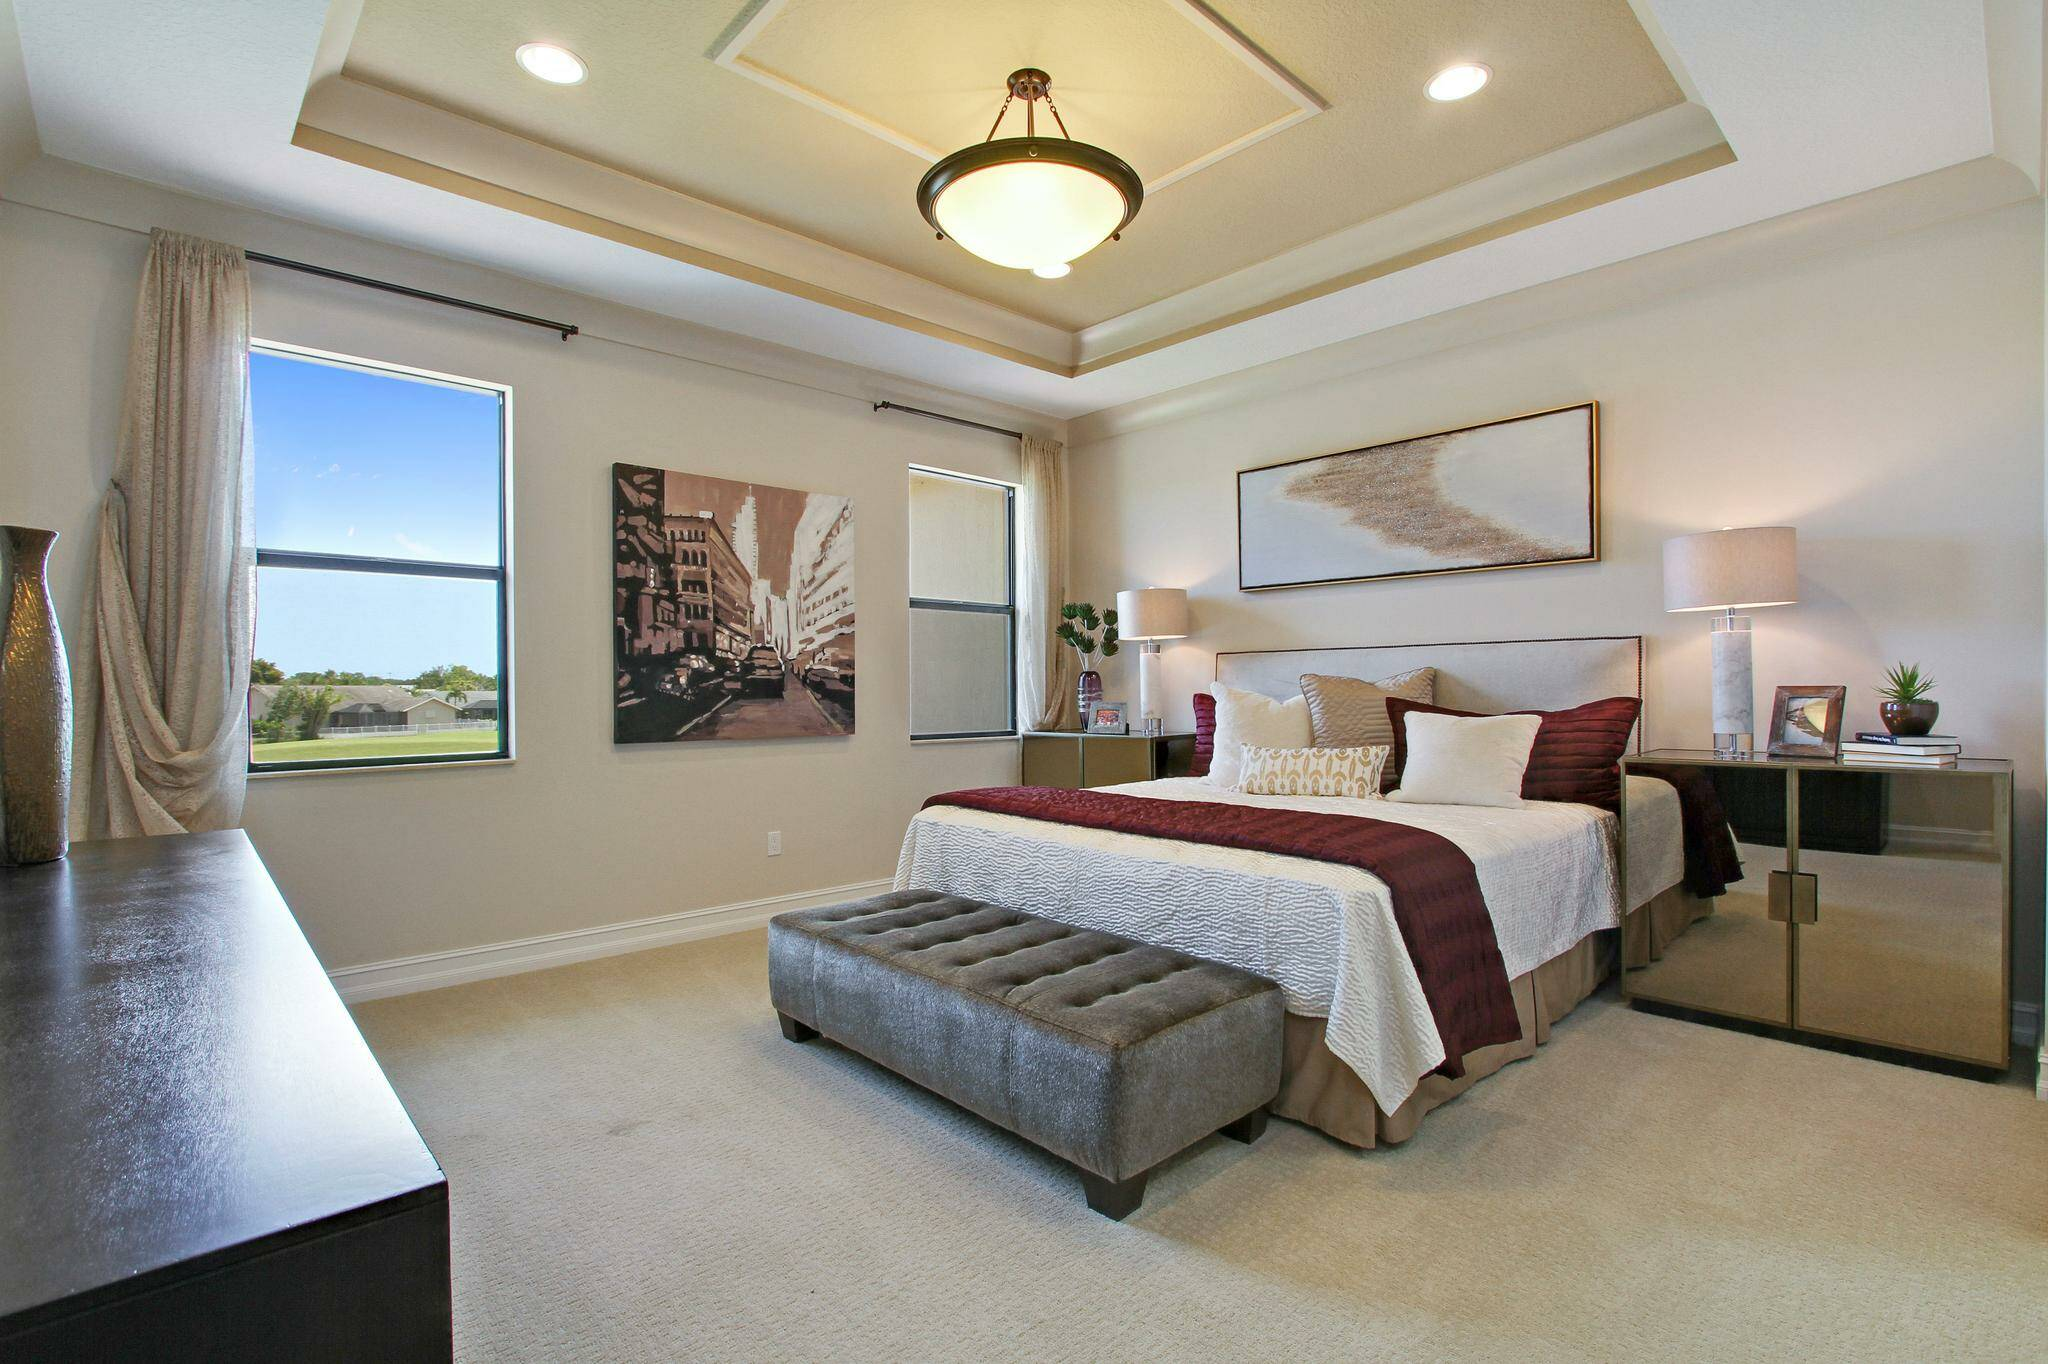 16_owners suite bonaire enclave new homes in boca raton